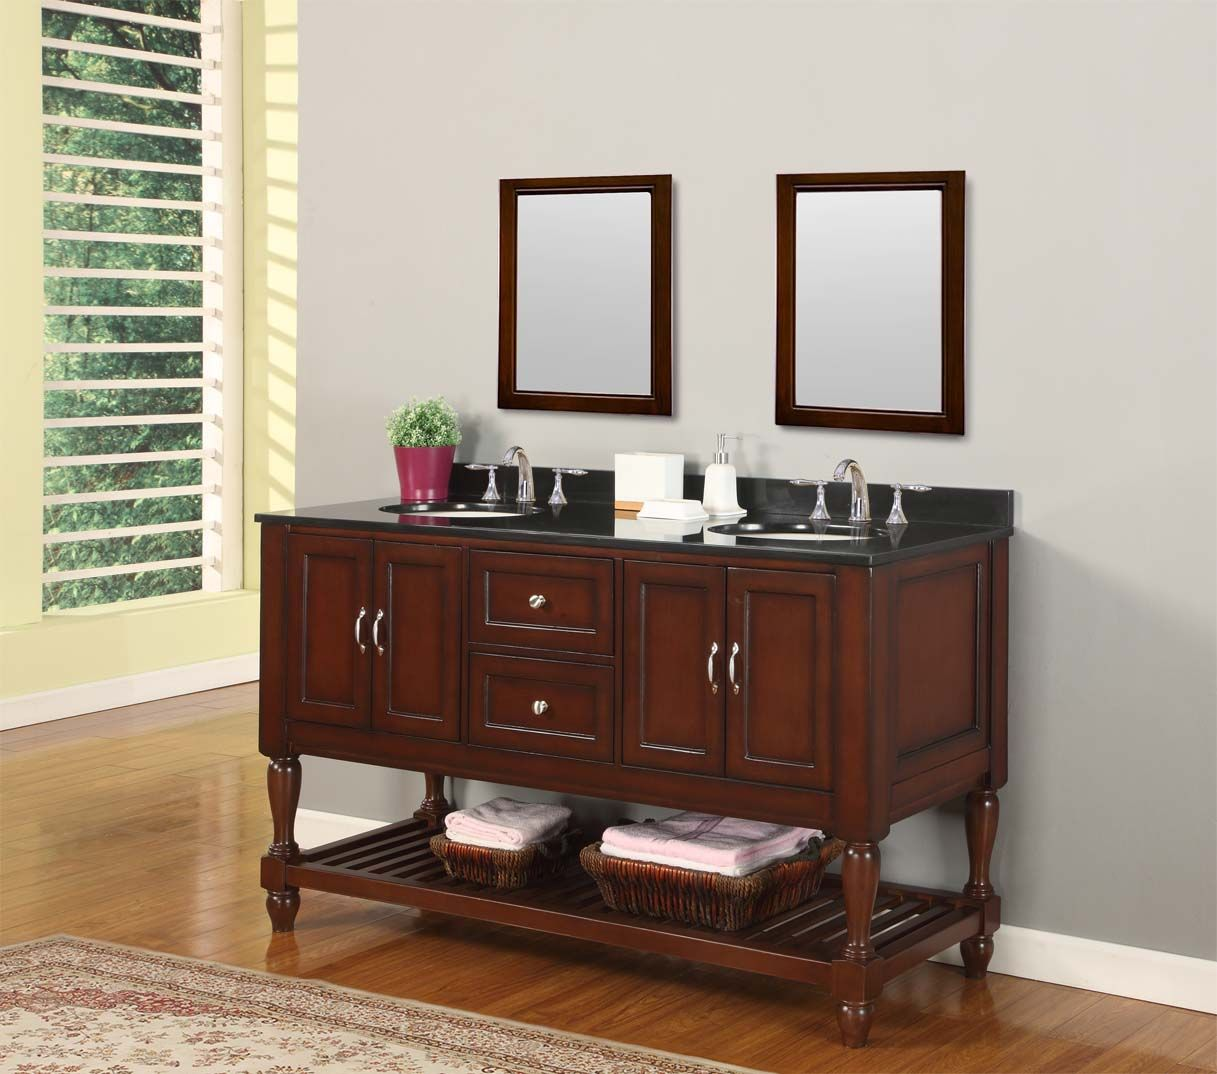 "show details for 60"" mission turnleg style double bathroom vanity"